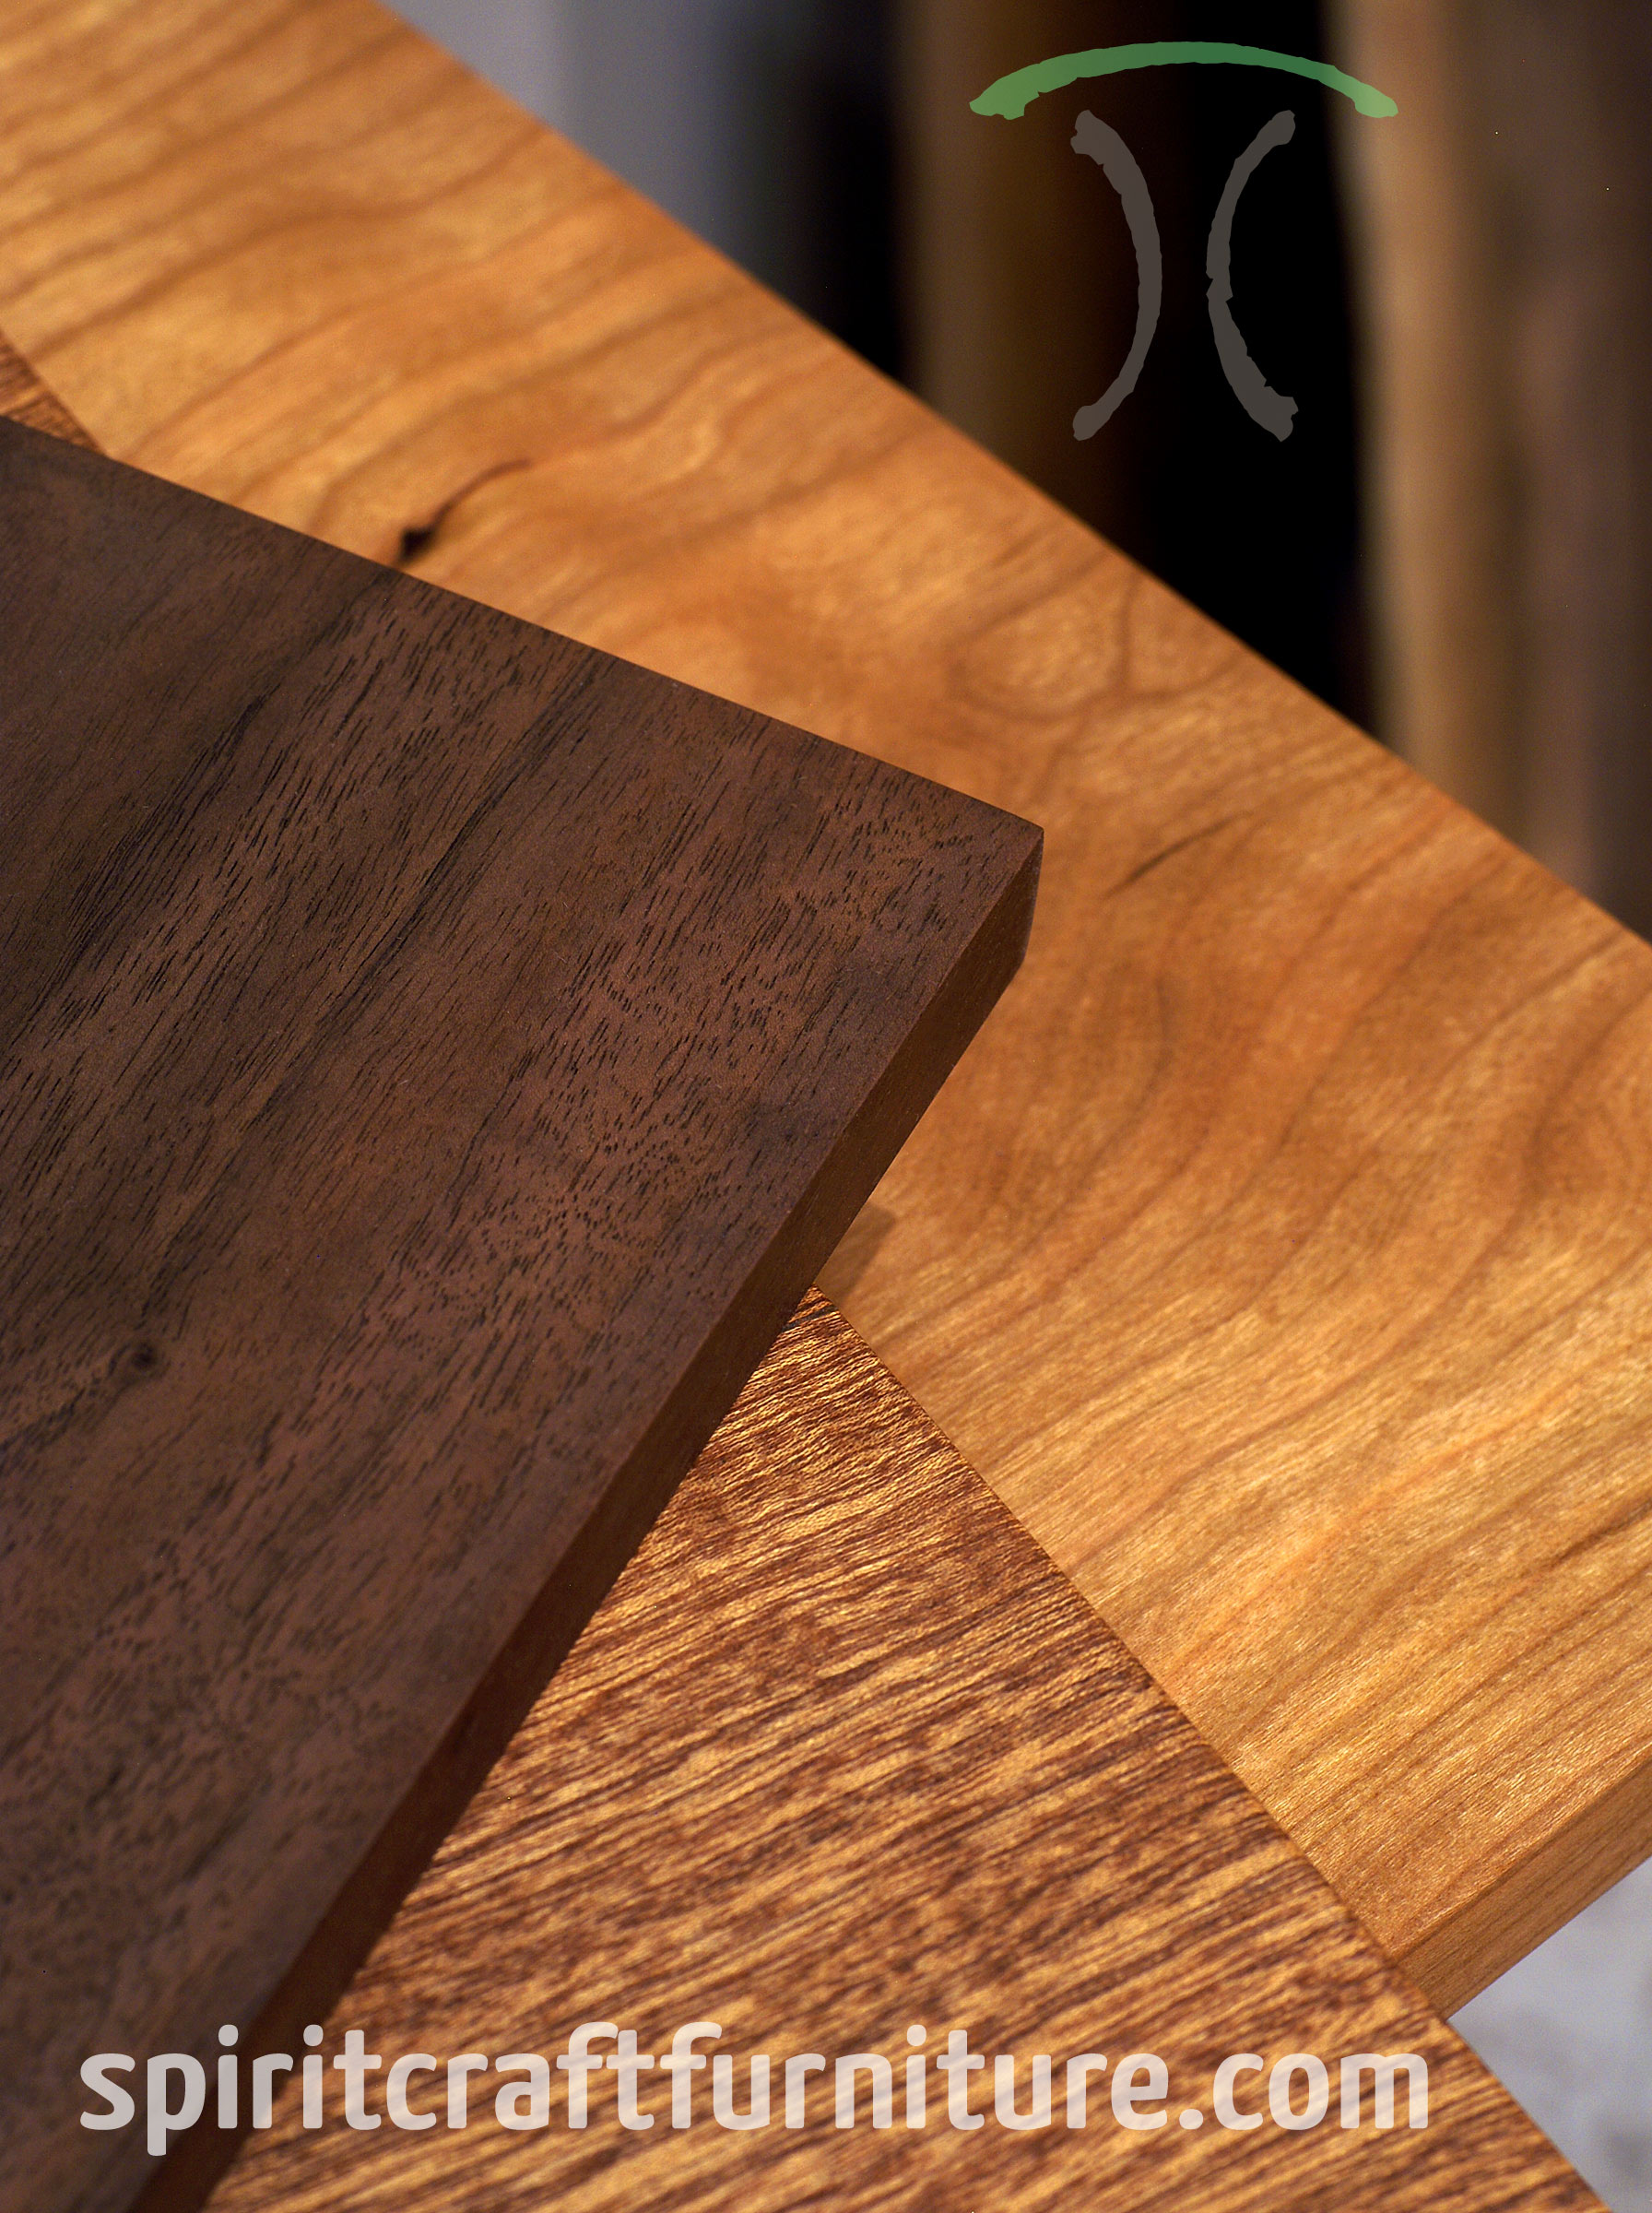 Solid Wood Table Tops In Walnut Cherrry And Sapele Hardwoods For Restaurant Dining Tables